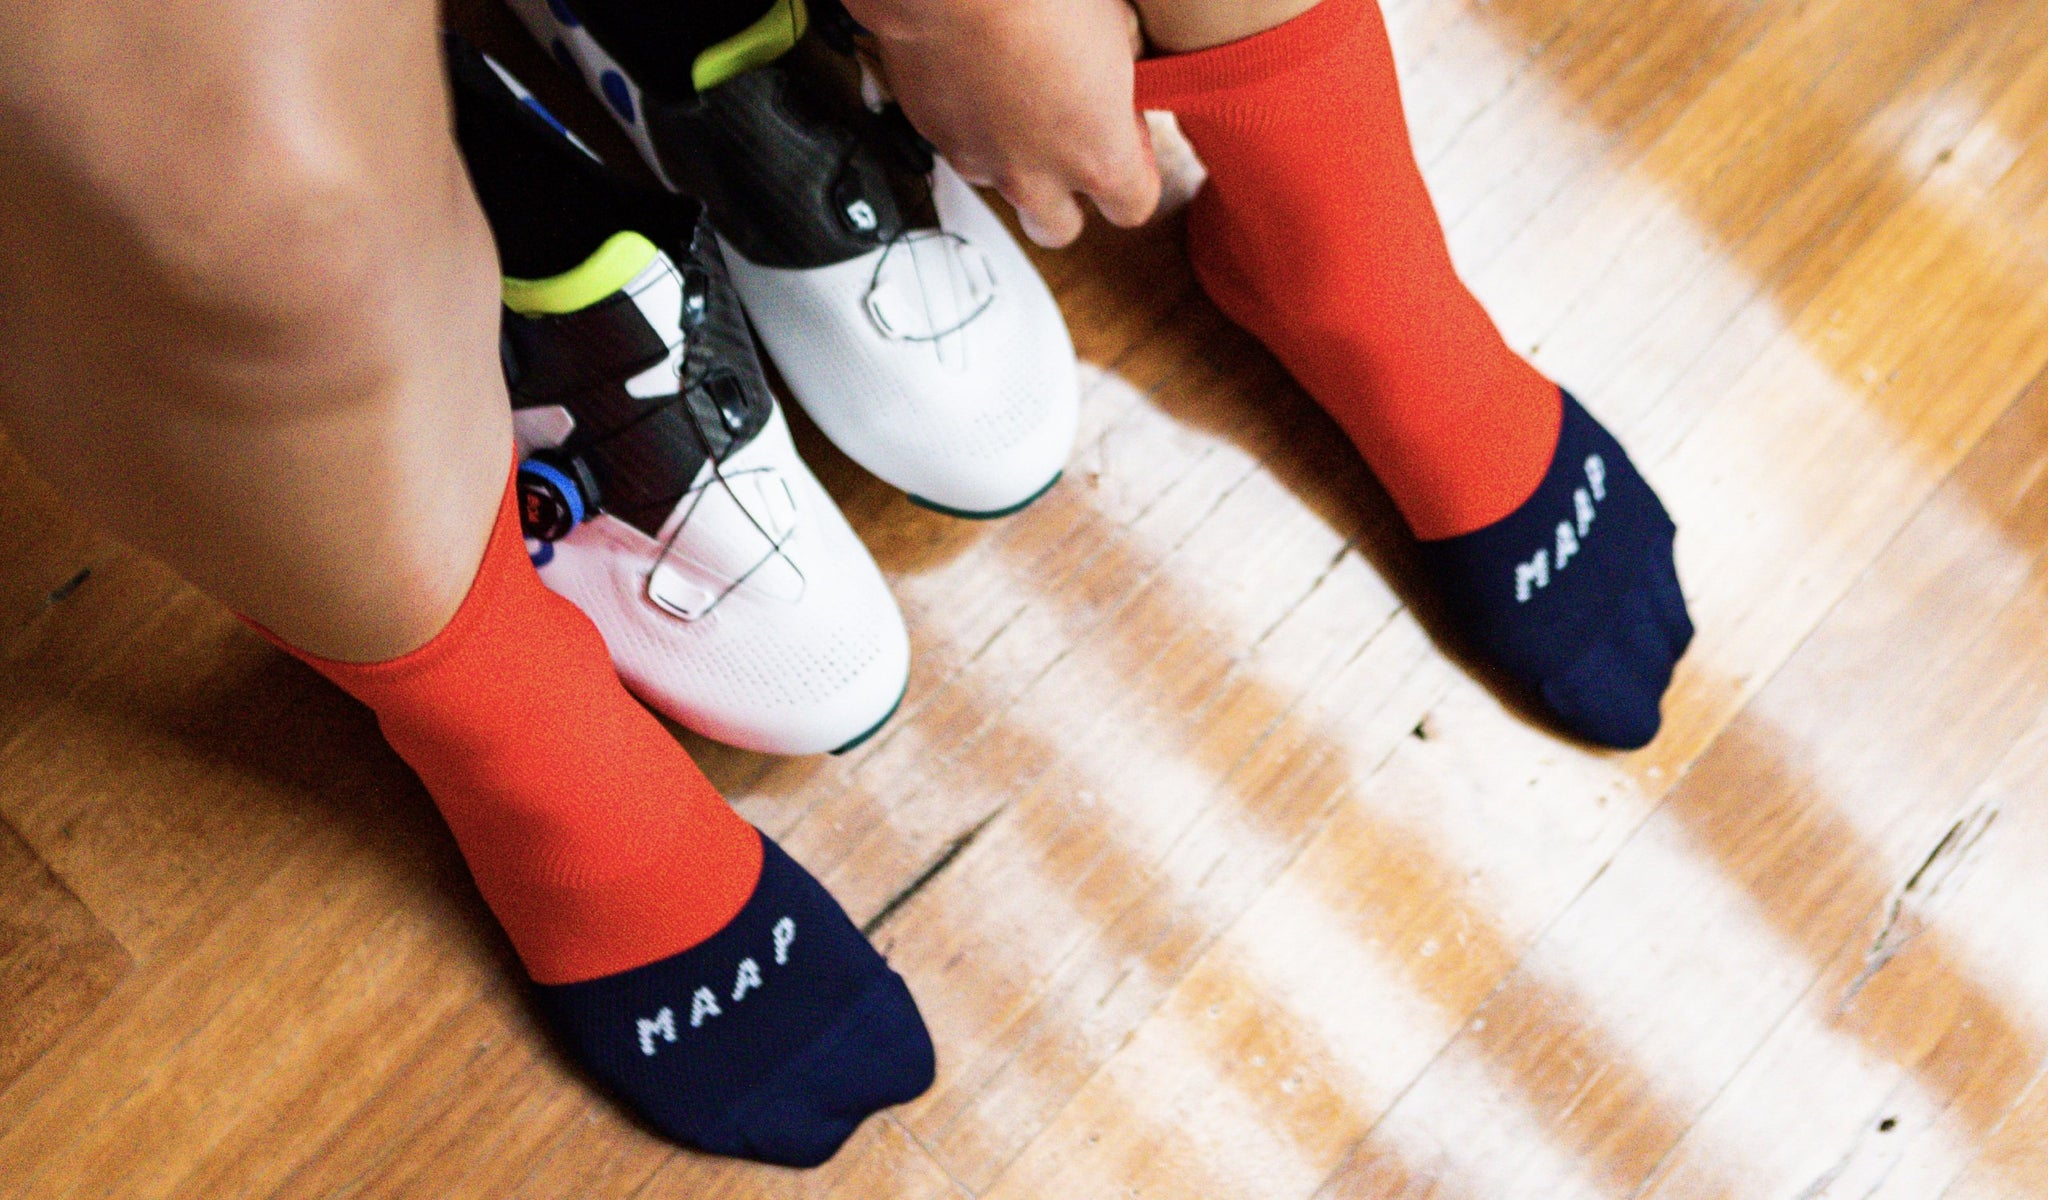 MAAP Division Cycling Socks in Chili Red for warm weather cycling conditions.